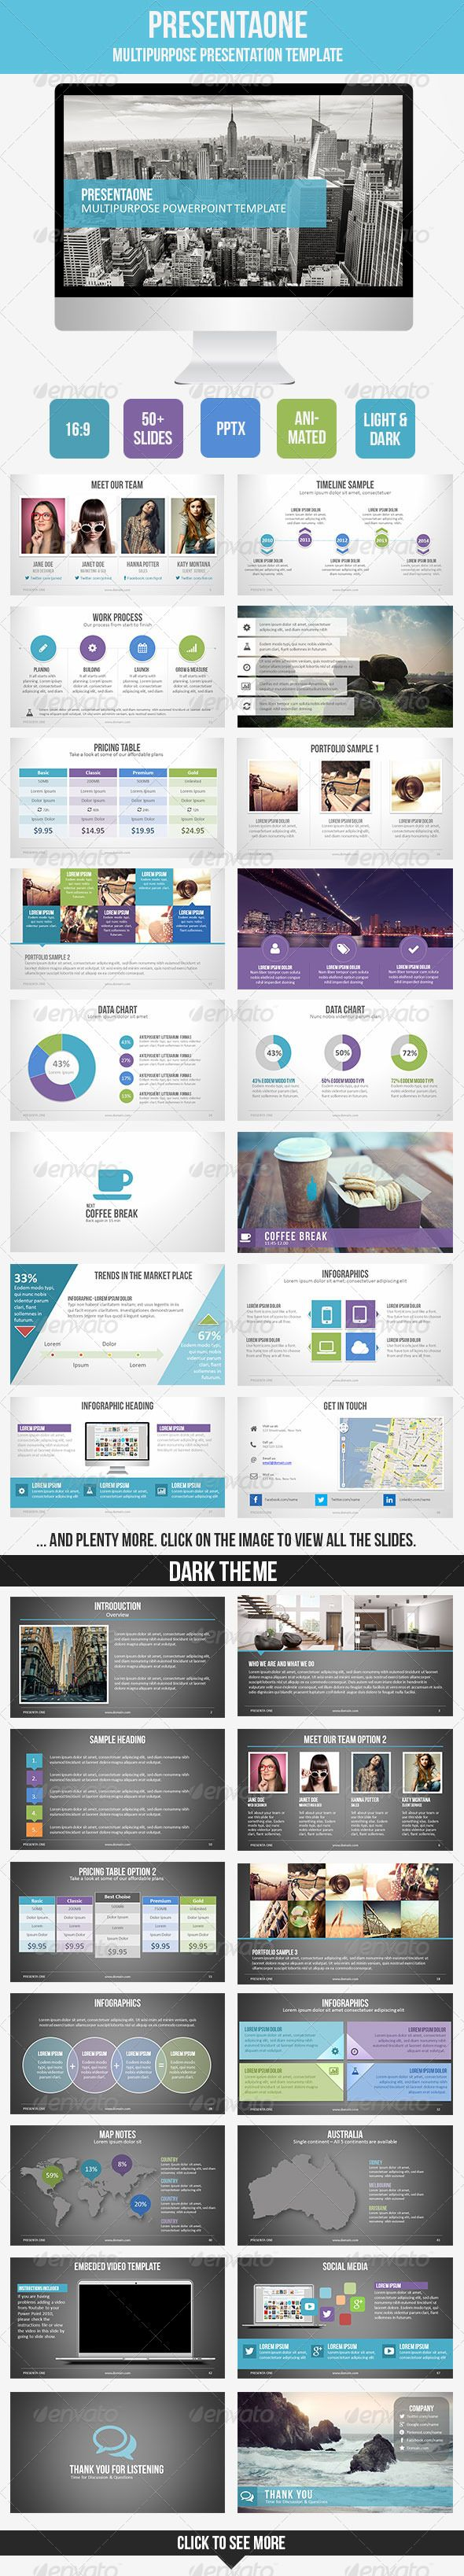 Poster design templates powerpoint - Presentaone Powerpoint Template